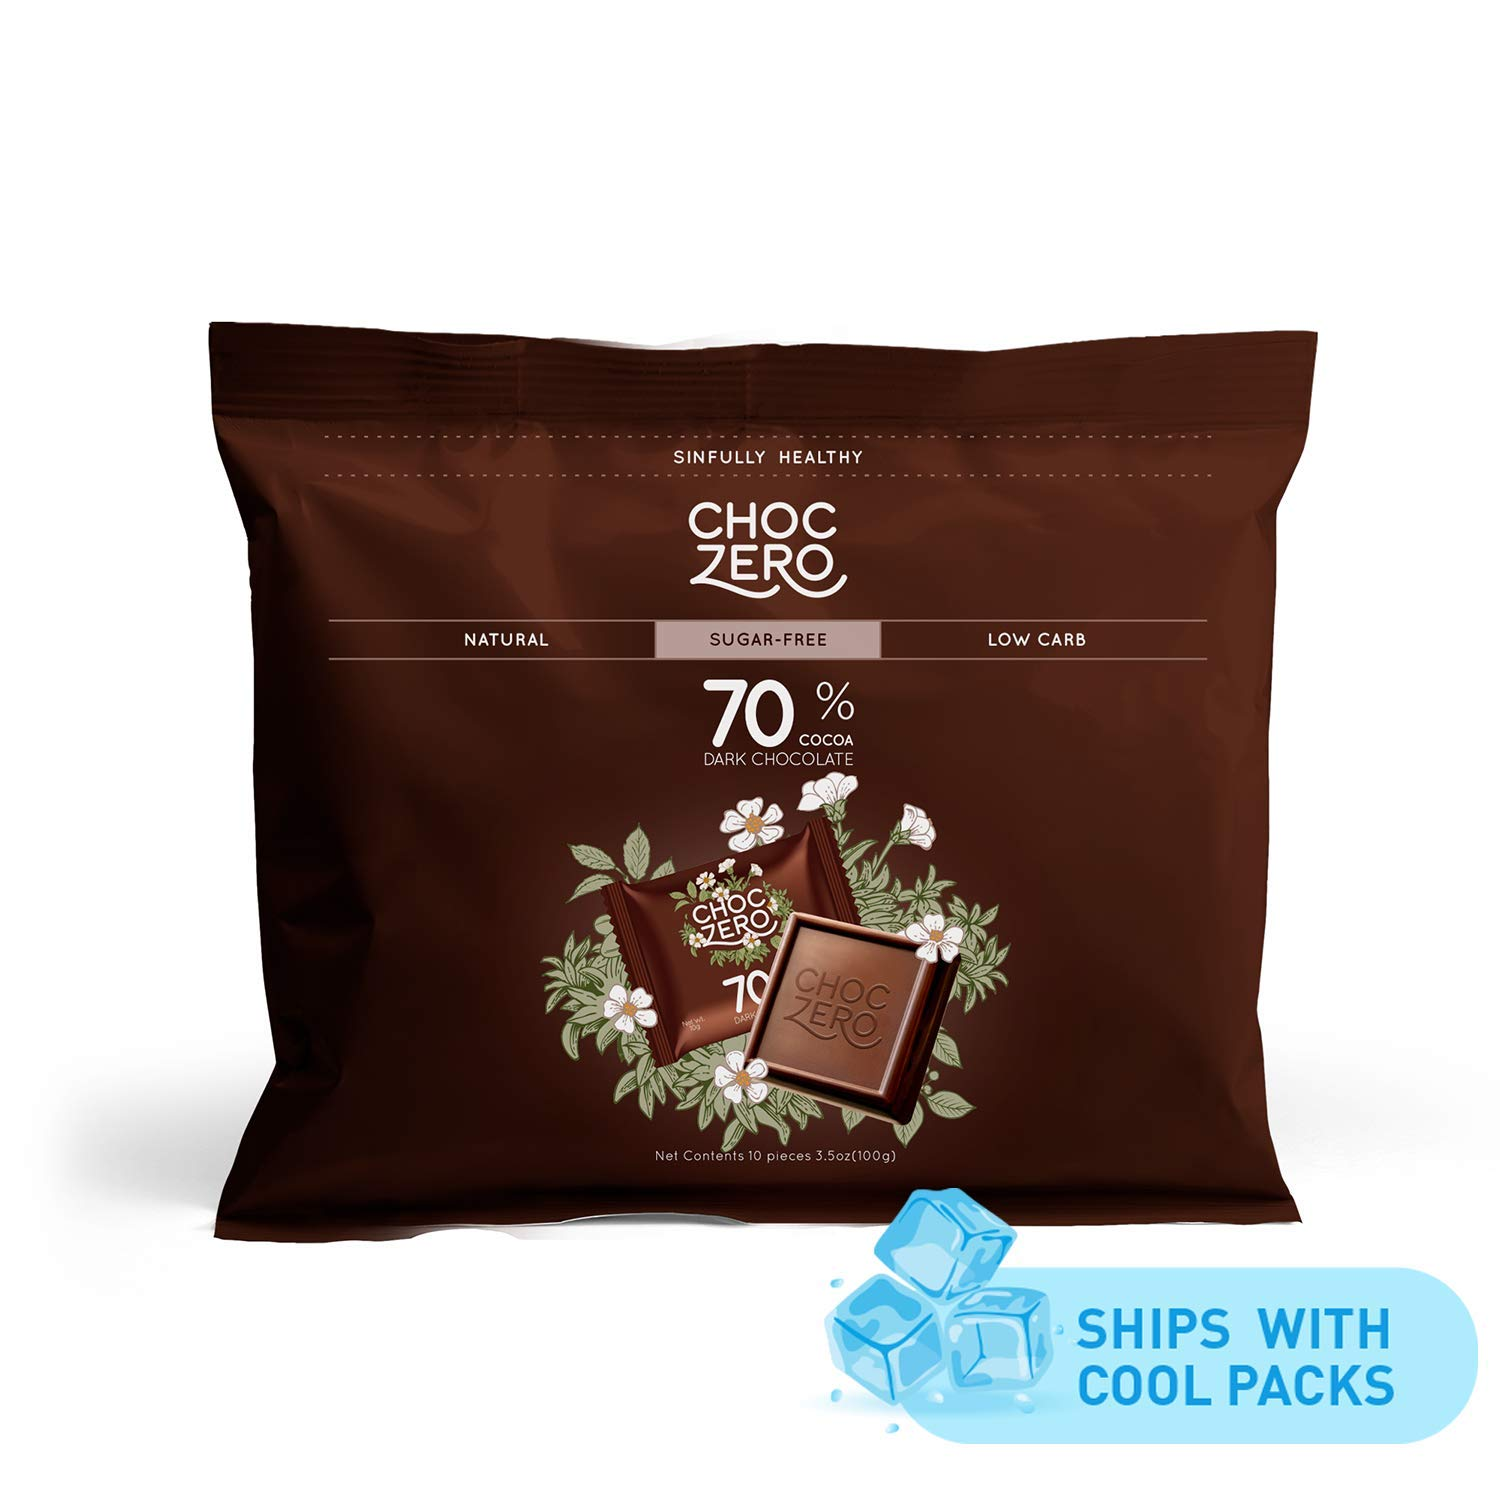 ChocZero 70% Dark Chocolate, Sugar free, Low Carb. No Sugar Alcohol, No Artificial Sweetener, All Natural, Non-GMO - (6 Bags, 60 pieces)